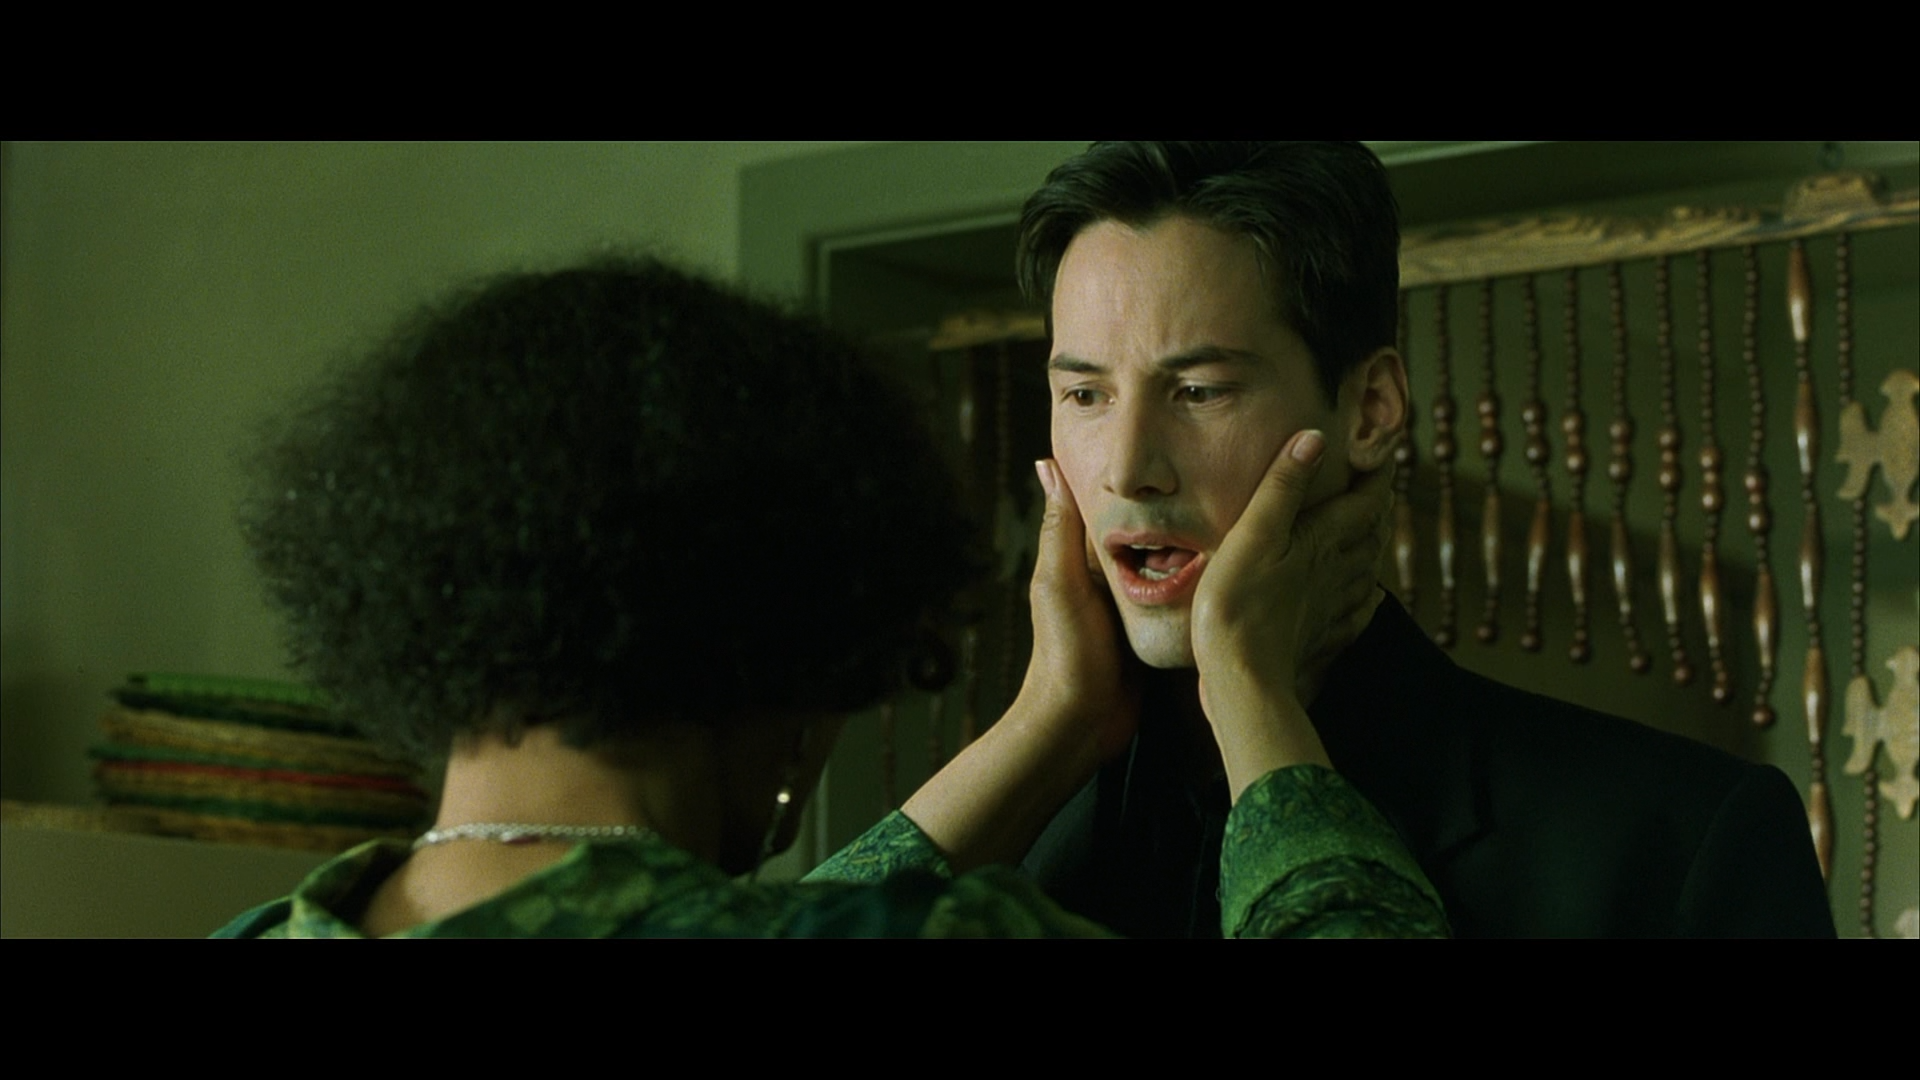 an analysis of messiah in the matrix Adam's analysis of the matrix: reloaded here are my ideas on the matrix reloaded movie a lot of people find it confusing and decided that it is only an eye-candy film simply because it is hard to understand.